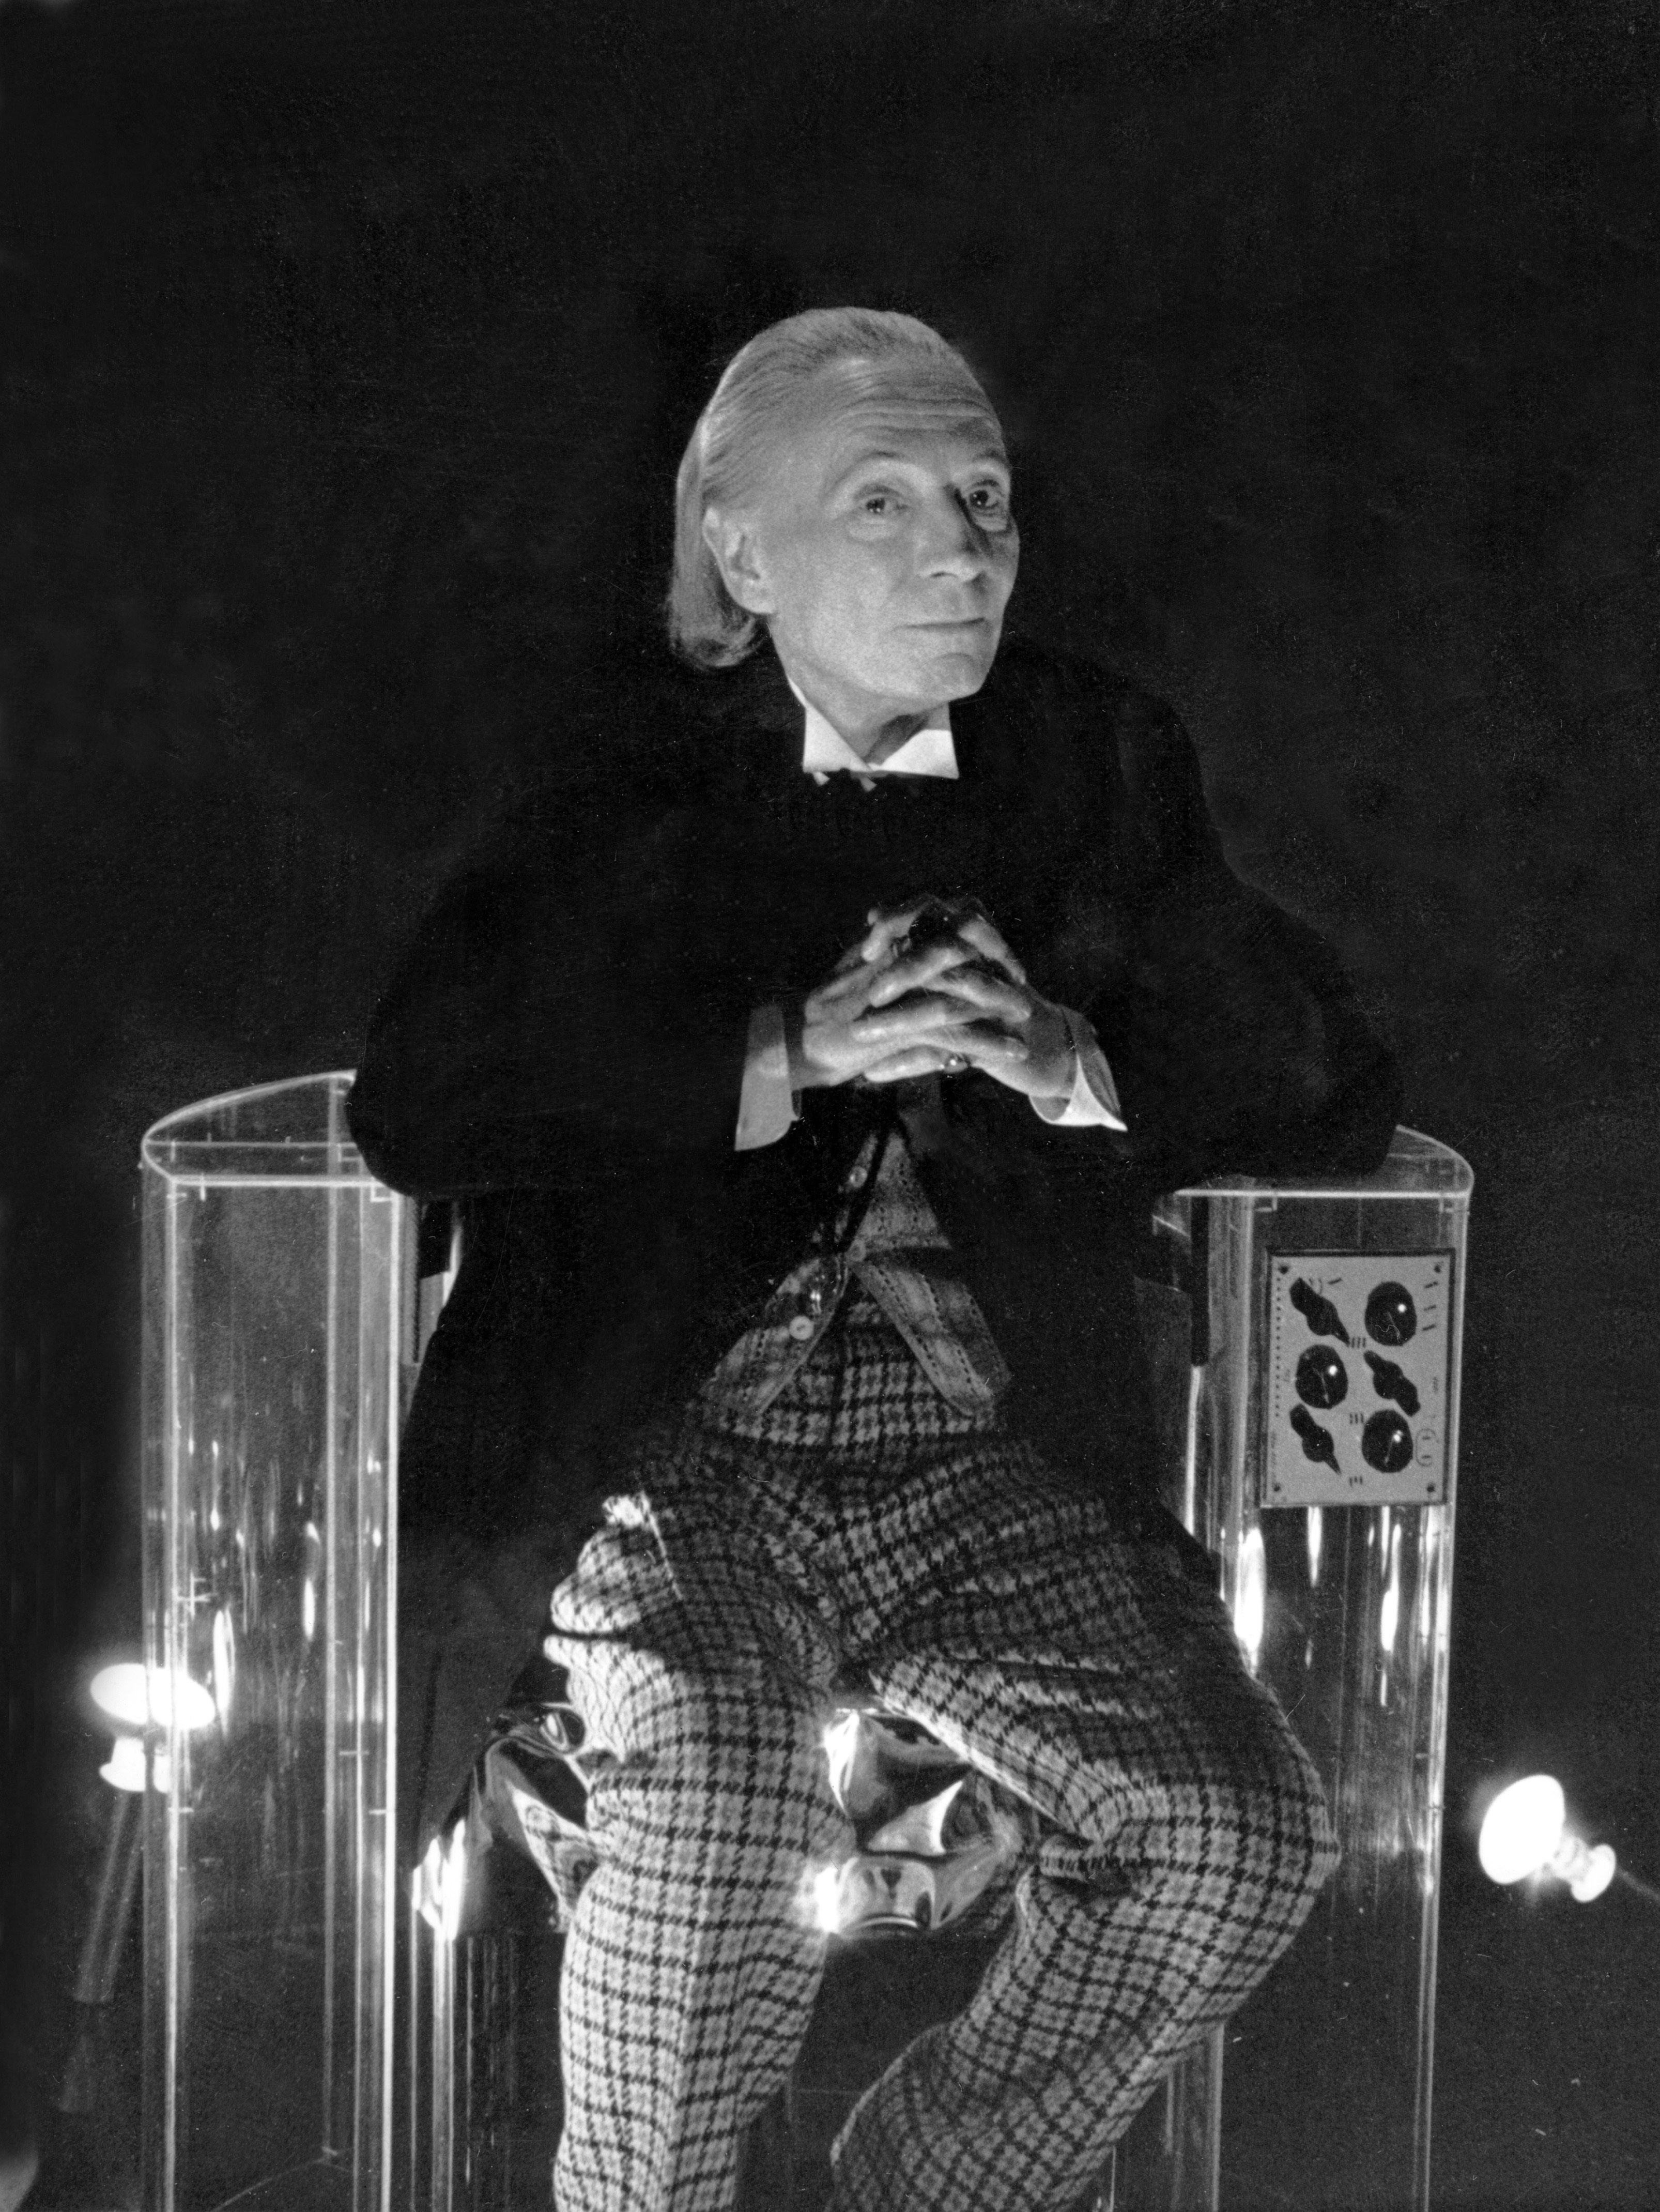 <strong>First Doctor - William Hartnell</strong>